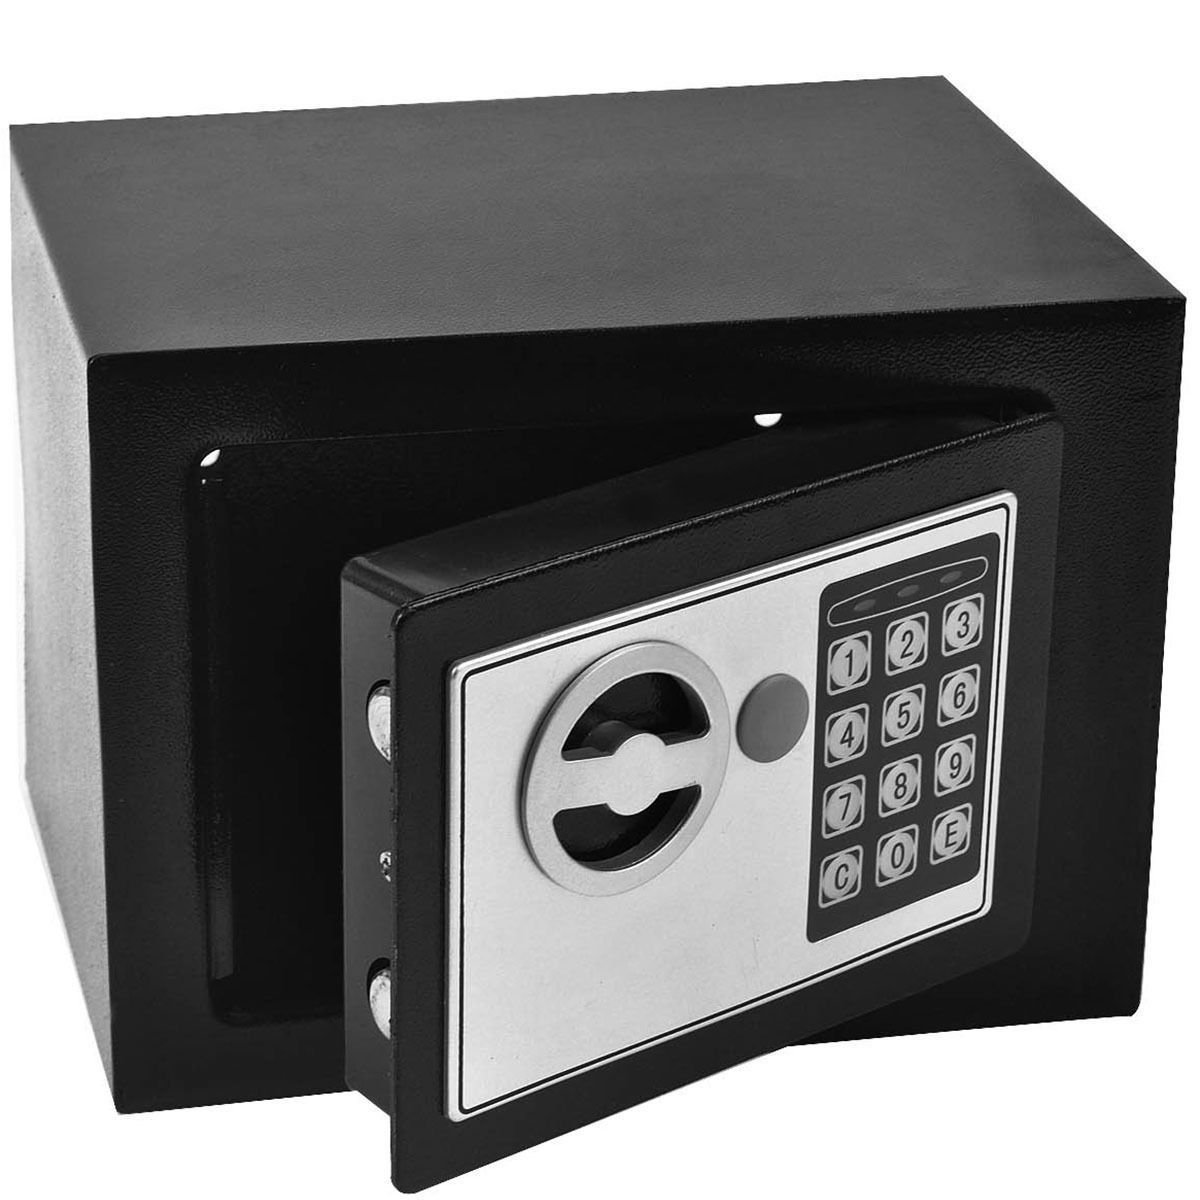 JUGREAT Safe Box with Induction Light,Electronic Digital Securit Safe Steel Construction Hidden with Lock,Wall or Cabinet Anchoring Design for Home Office Hotel BusinessGun Passport Cash,Black